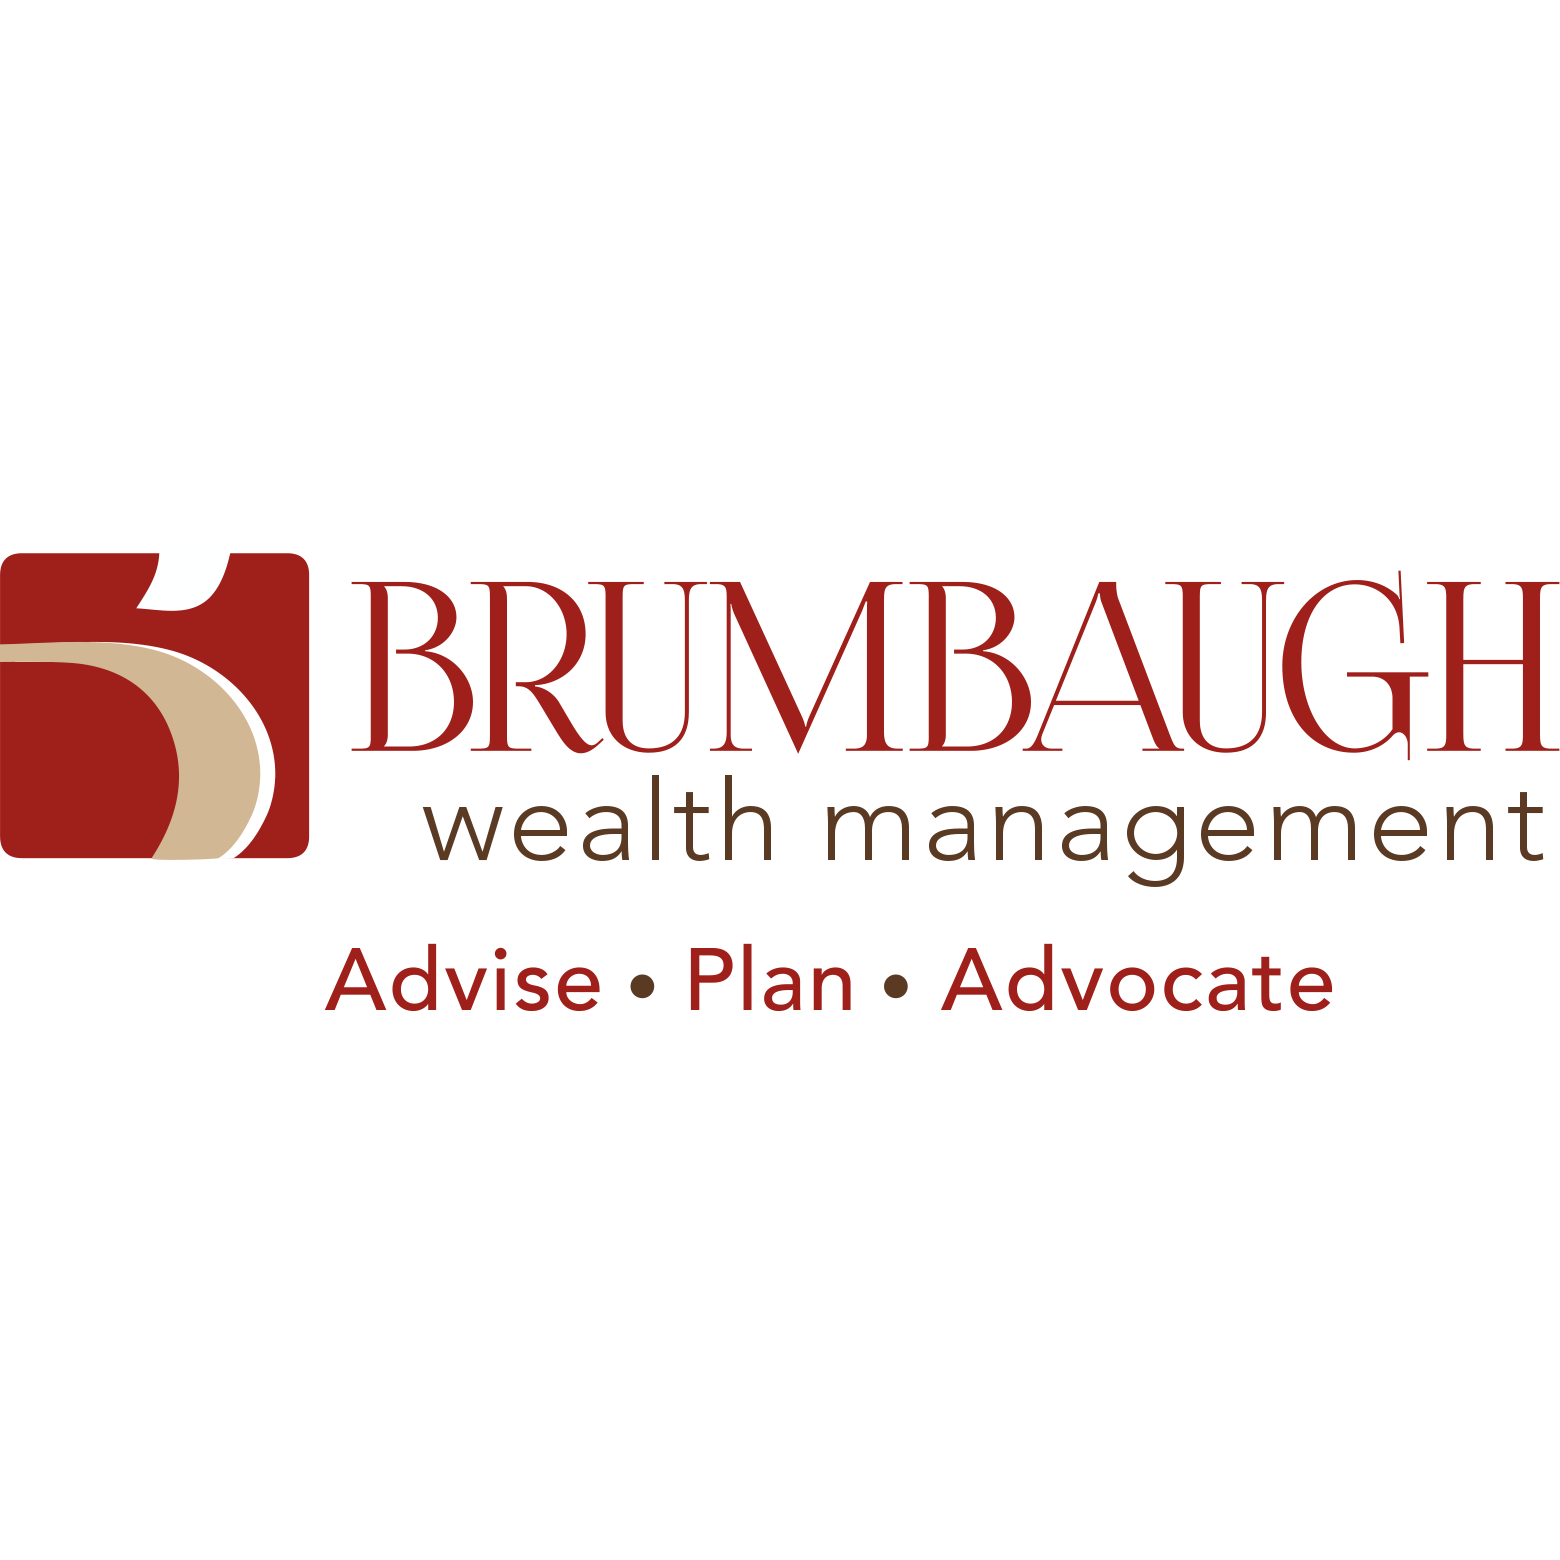 Brumbaugh Wealth Management